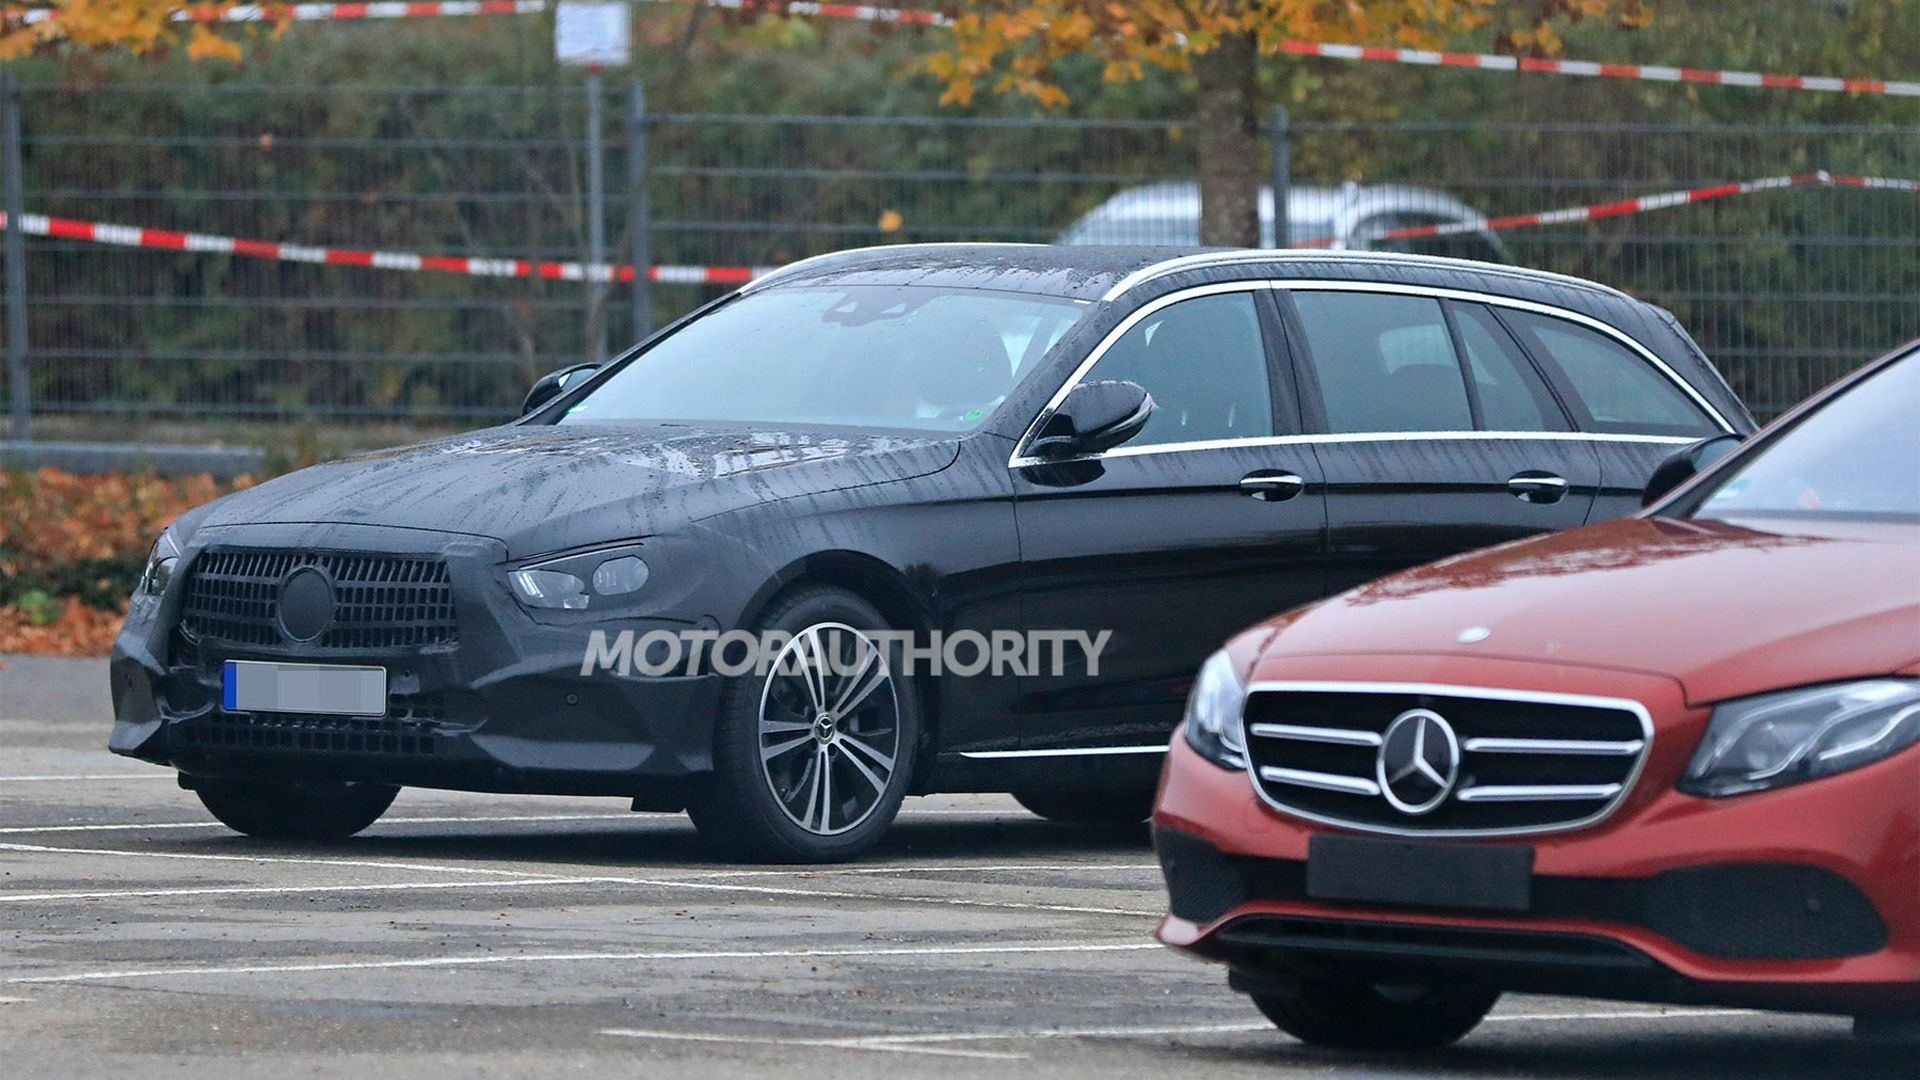 2021 Mercedes-Benz E-Class Wagon facelift spy shots - Image via S. Baldauf/SB-Medien